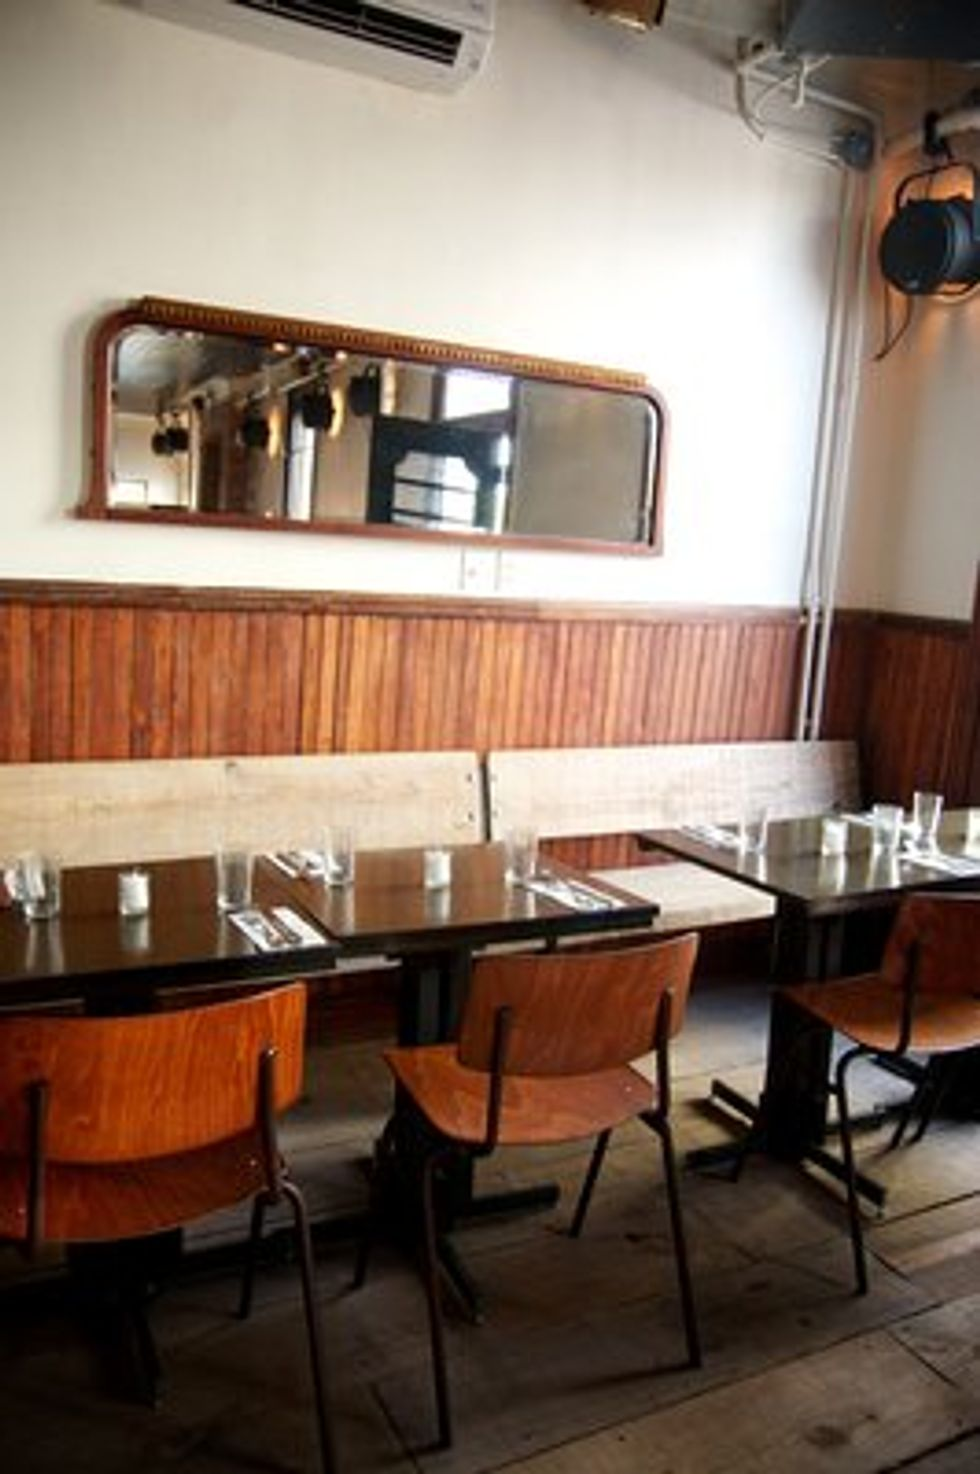 Restaurant Review: The Bedford